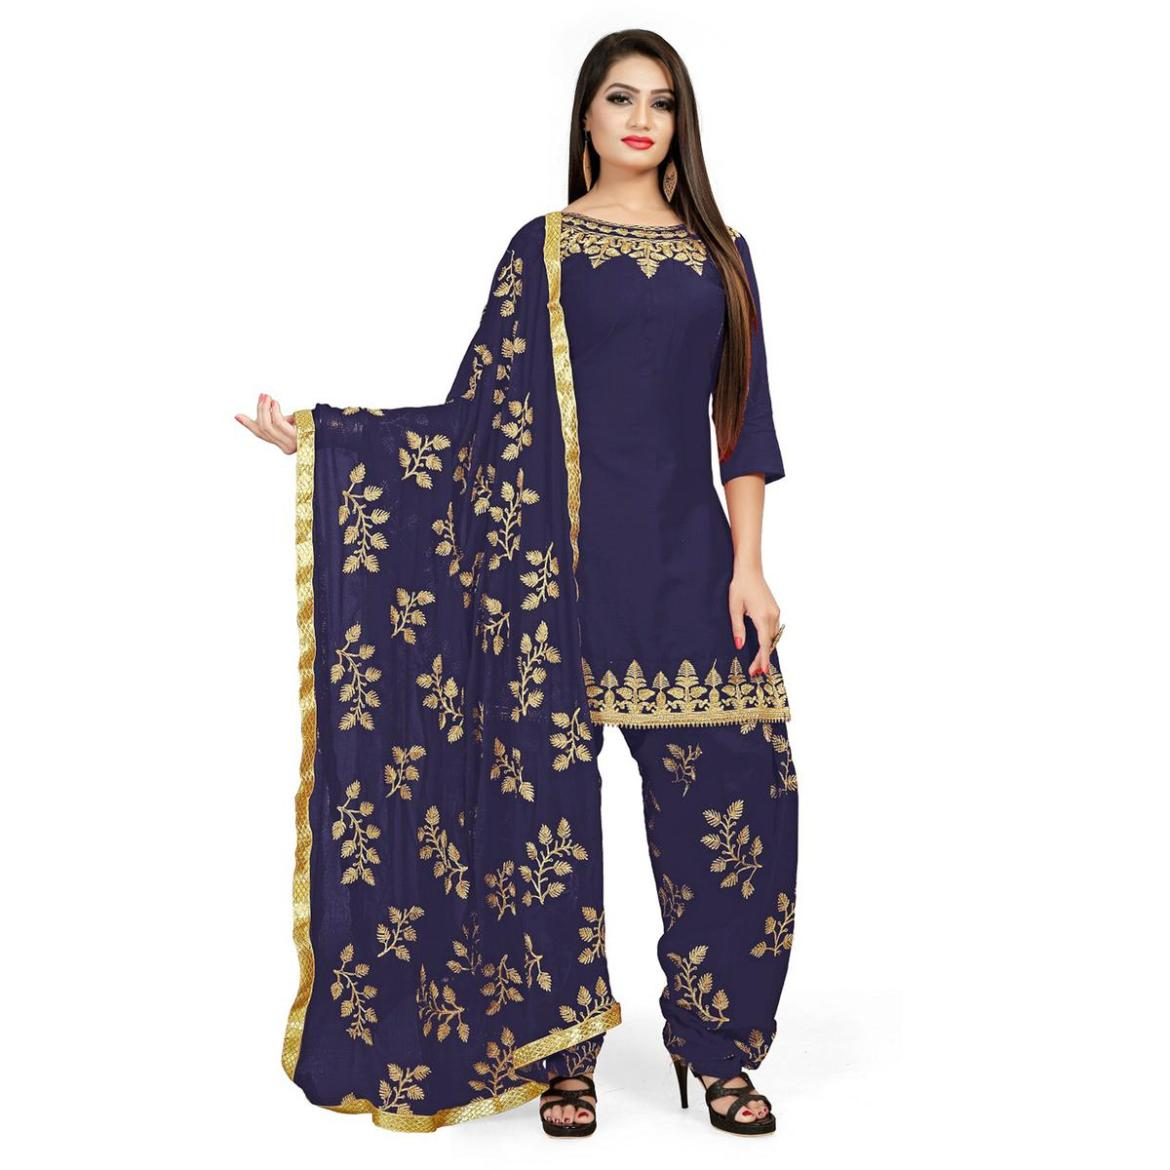 IRIS - Navy Blue Colored Party Wear Embroidered Cotton Patiyala Style Dress Material